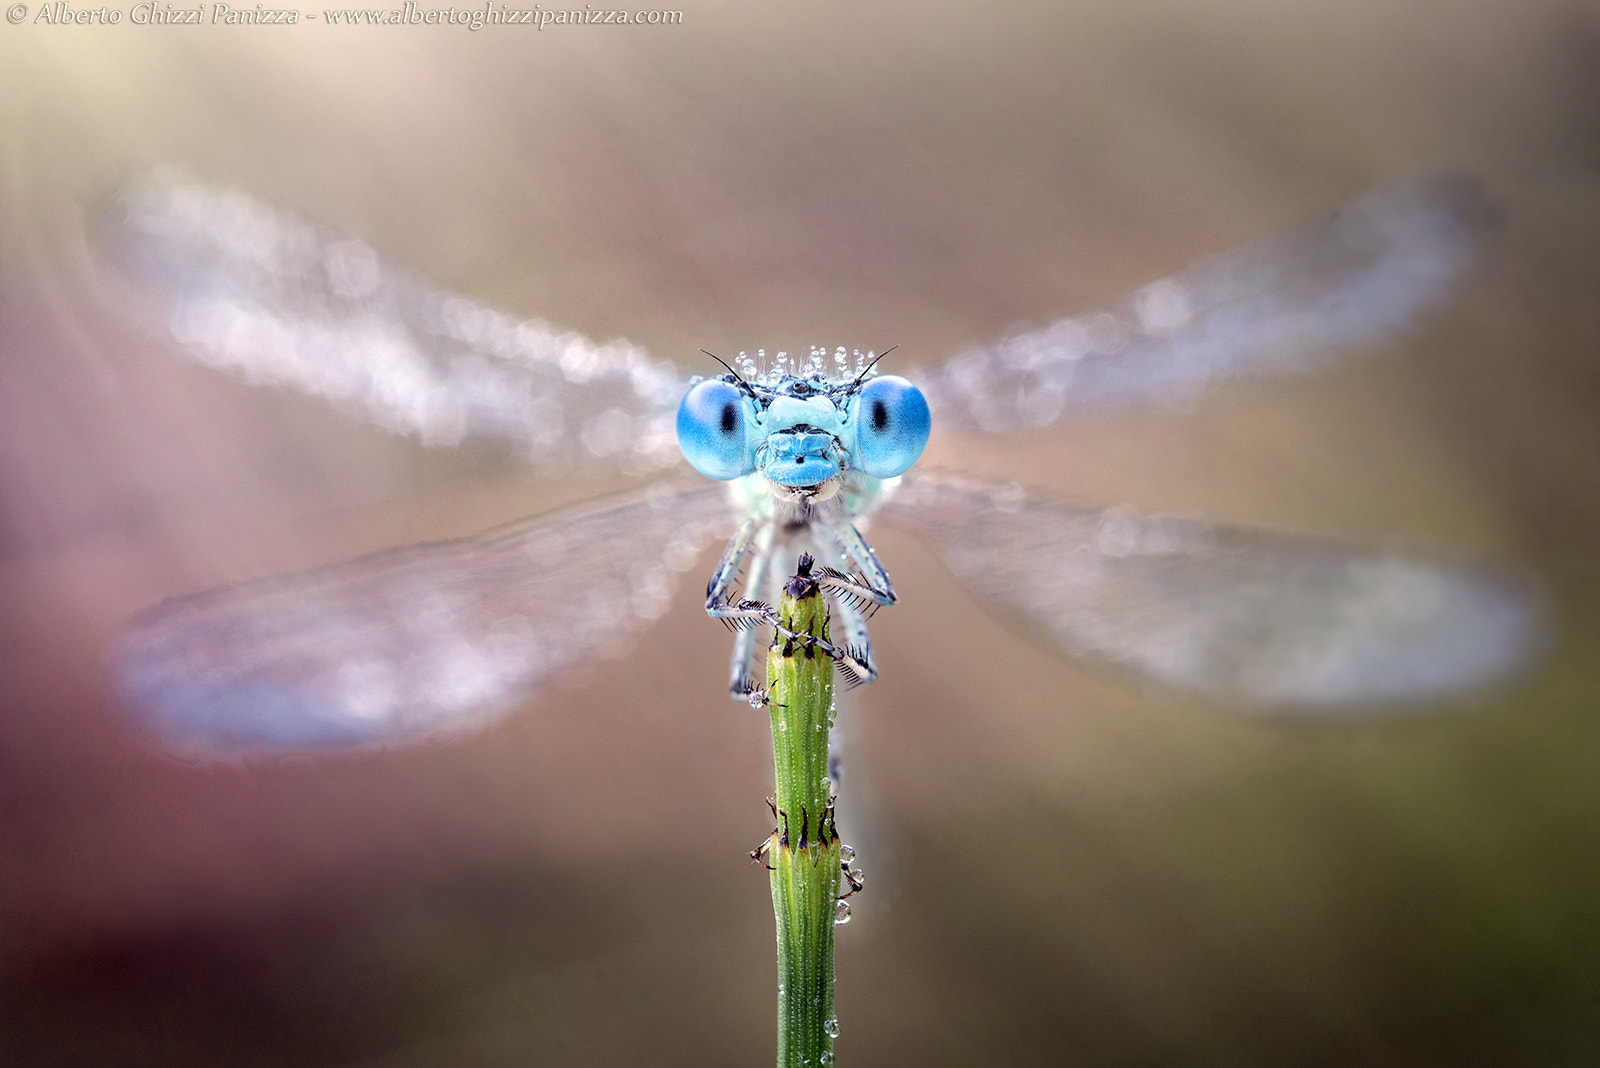 Photograph Coronation of the Queen by Alberto Ghizzi Panizza on 500px